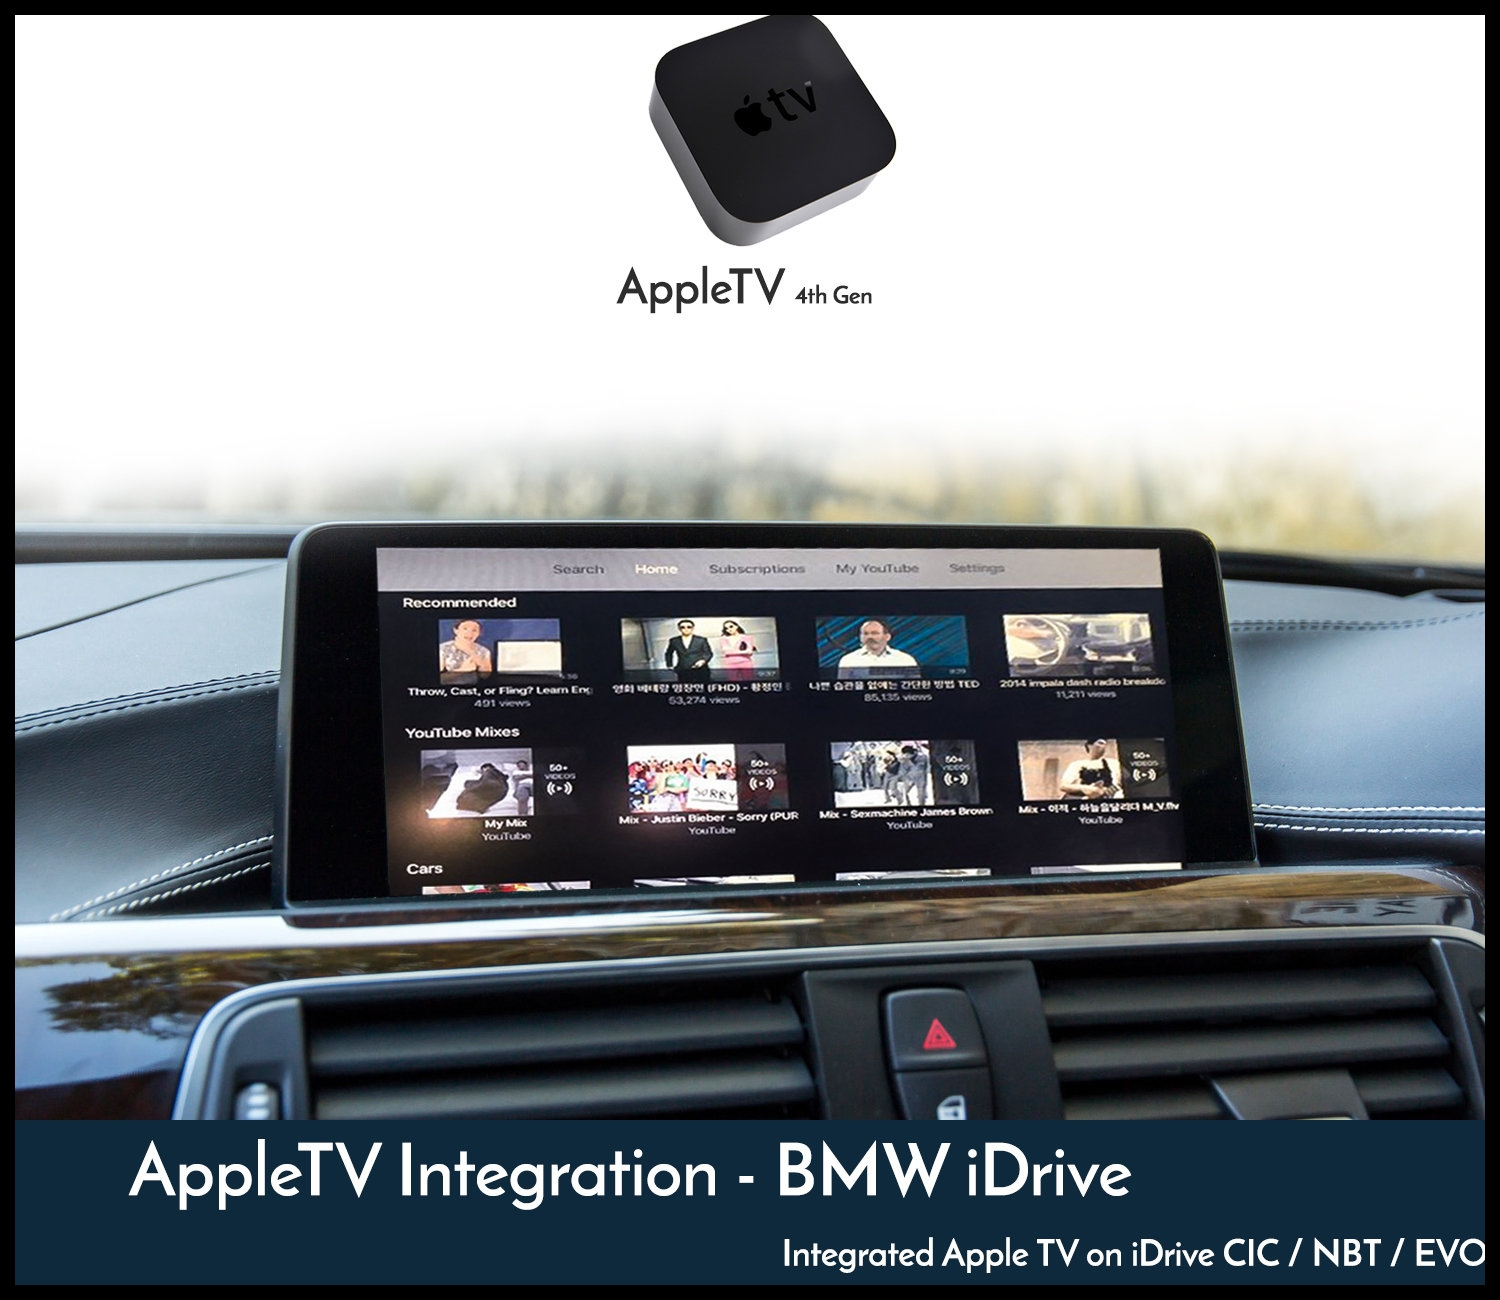 Integration of Genuine Apple TV 4th Gen features into BMW s iDrive